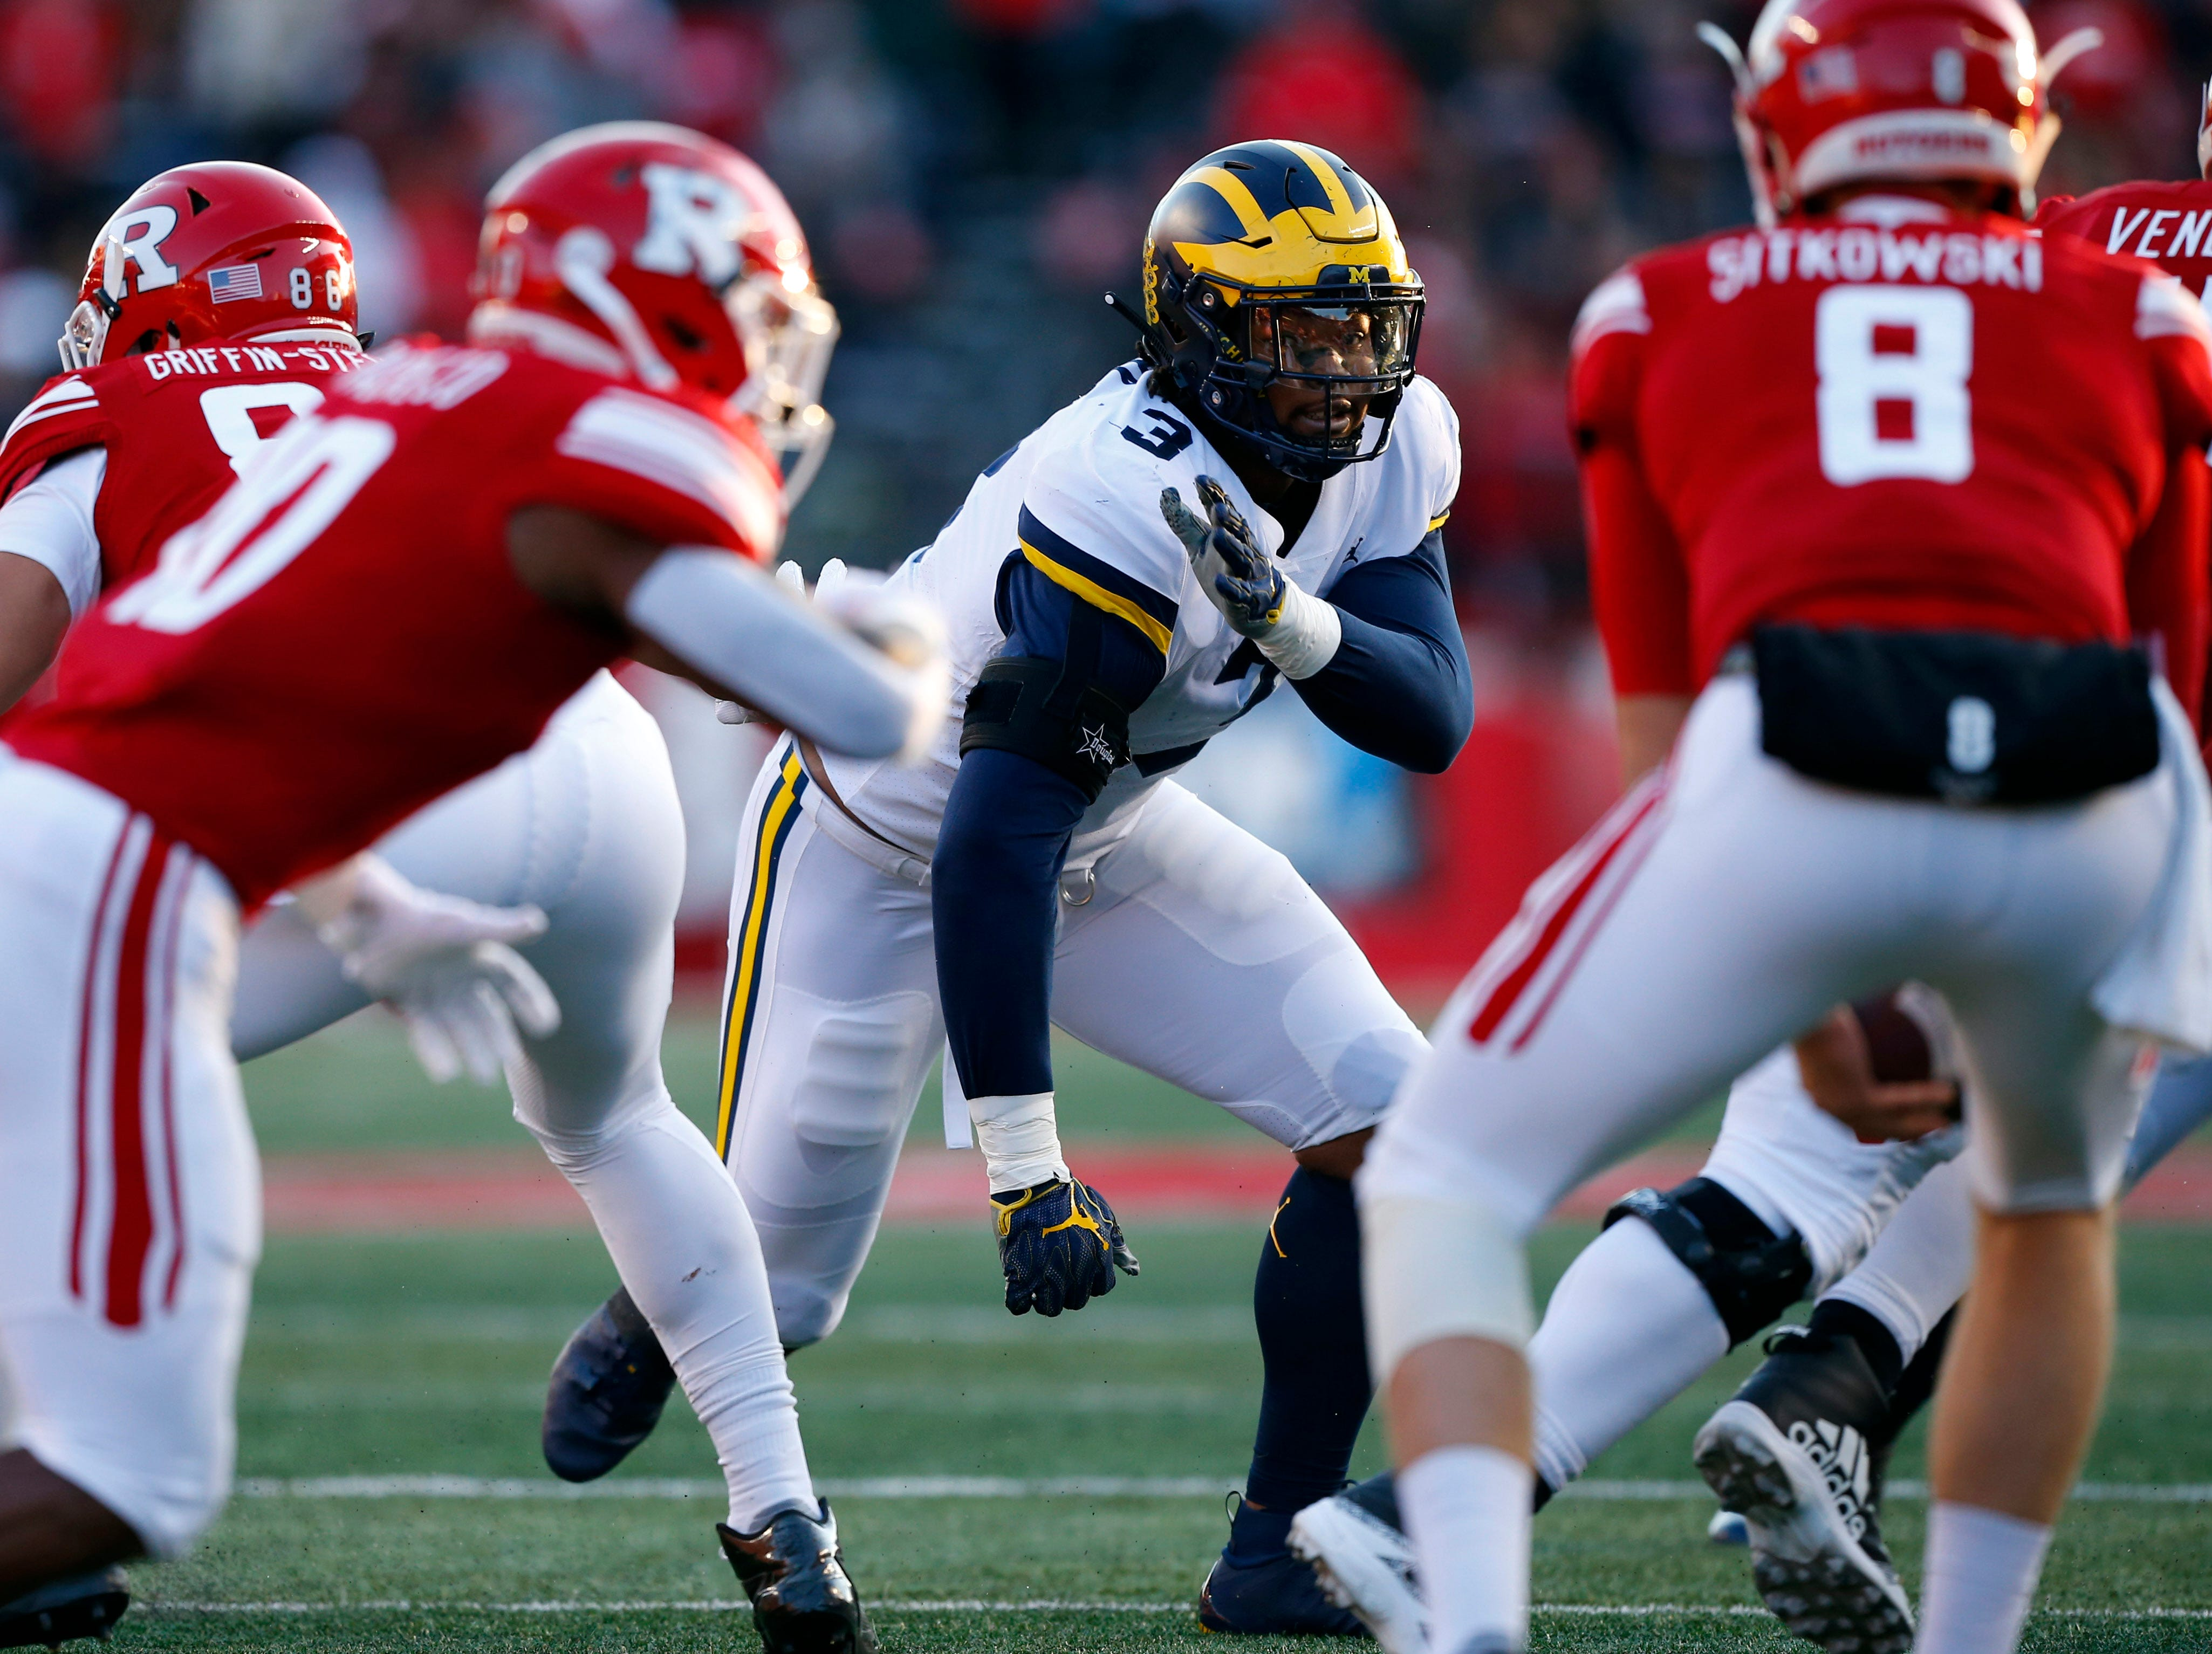 For Michigan football star Rashan Gary, a triumphant return to New Jersey